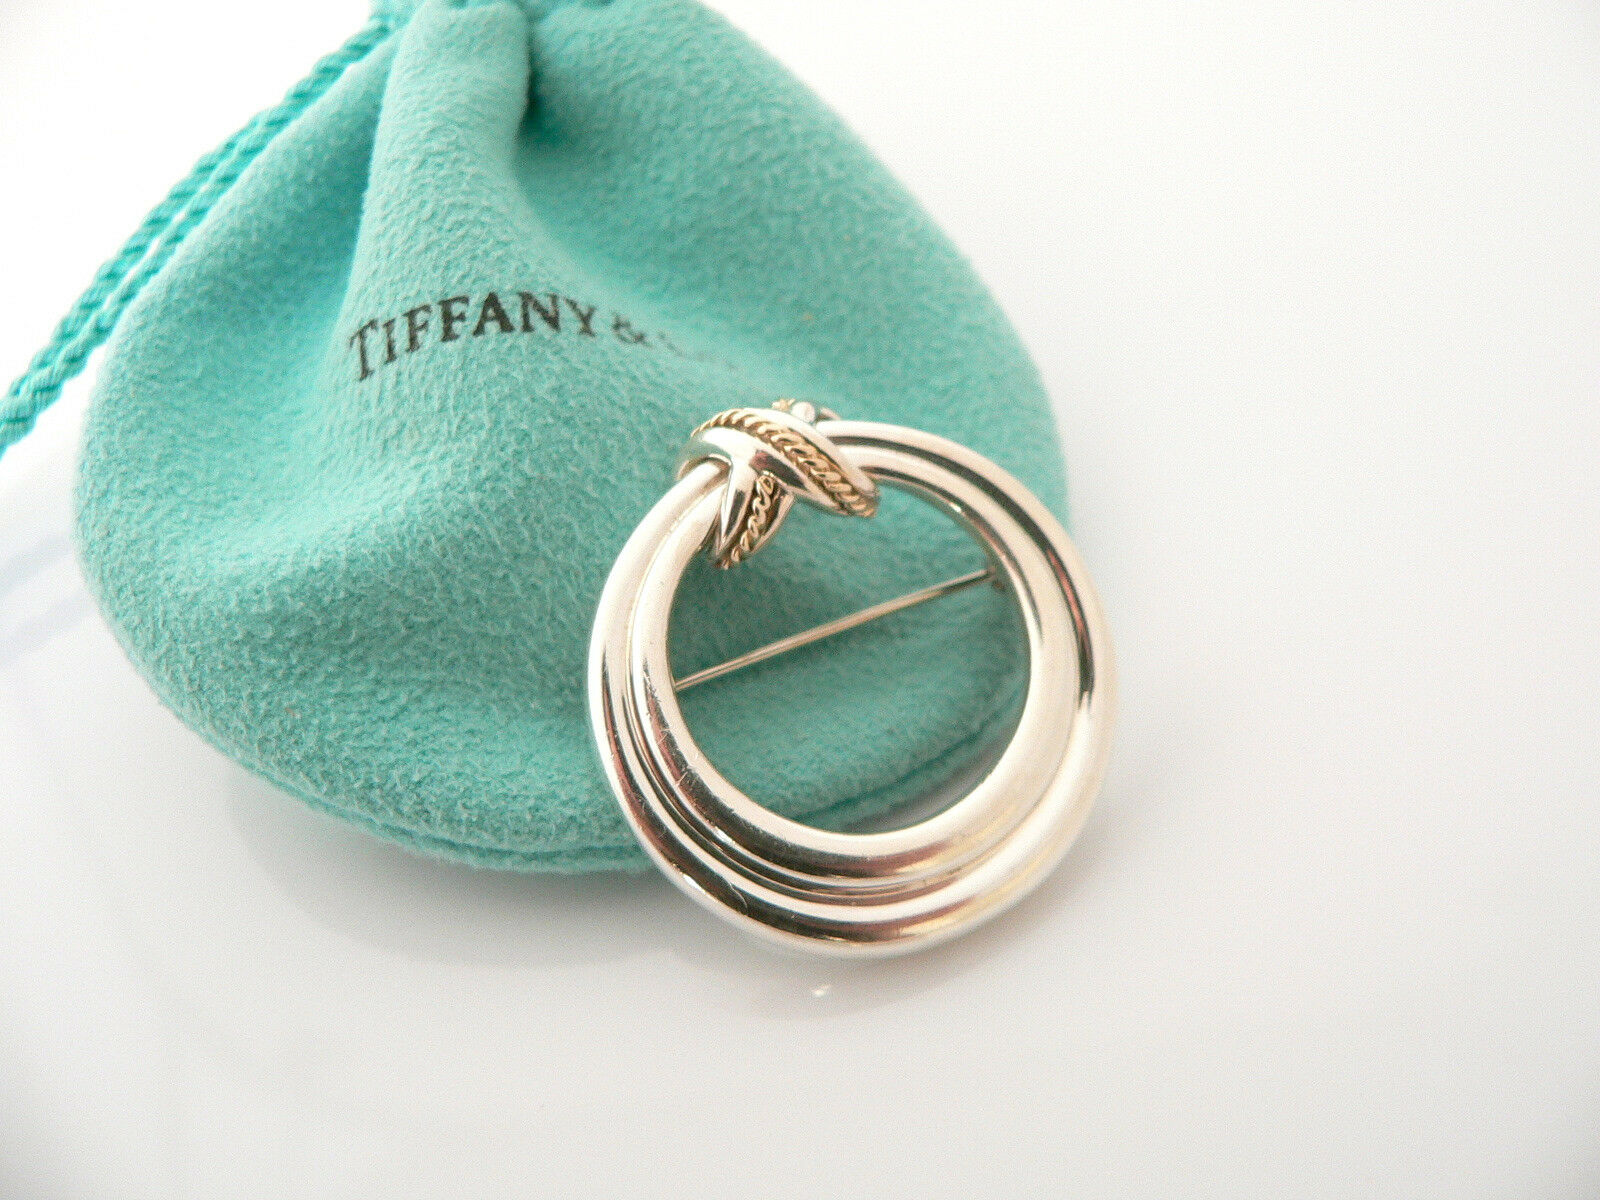 Tiffany & Co Silver 18K Gold Signature X  Rope Brooch Pin Rare Gift Pouch Love